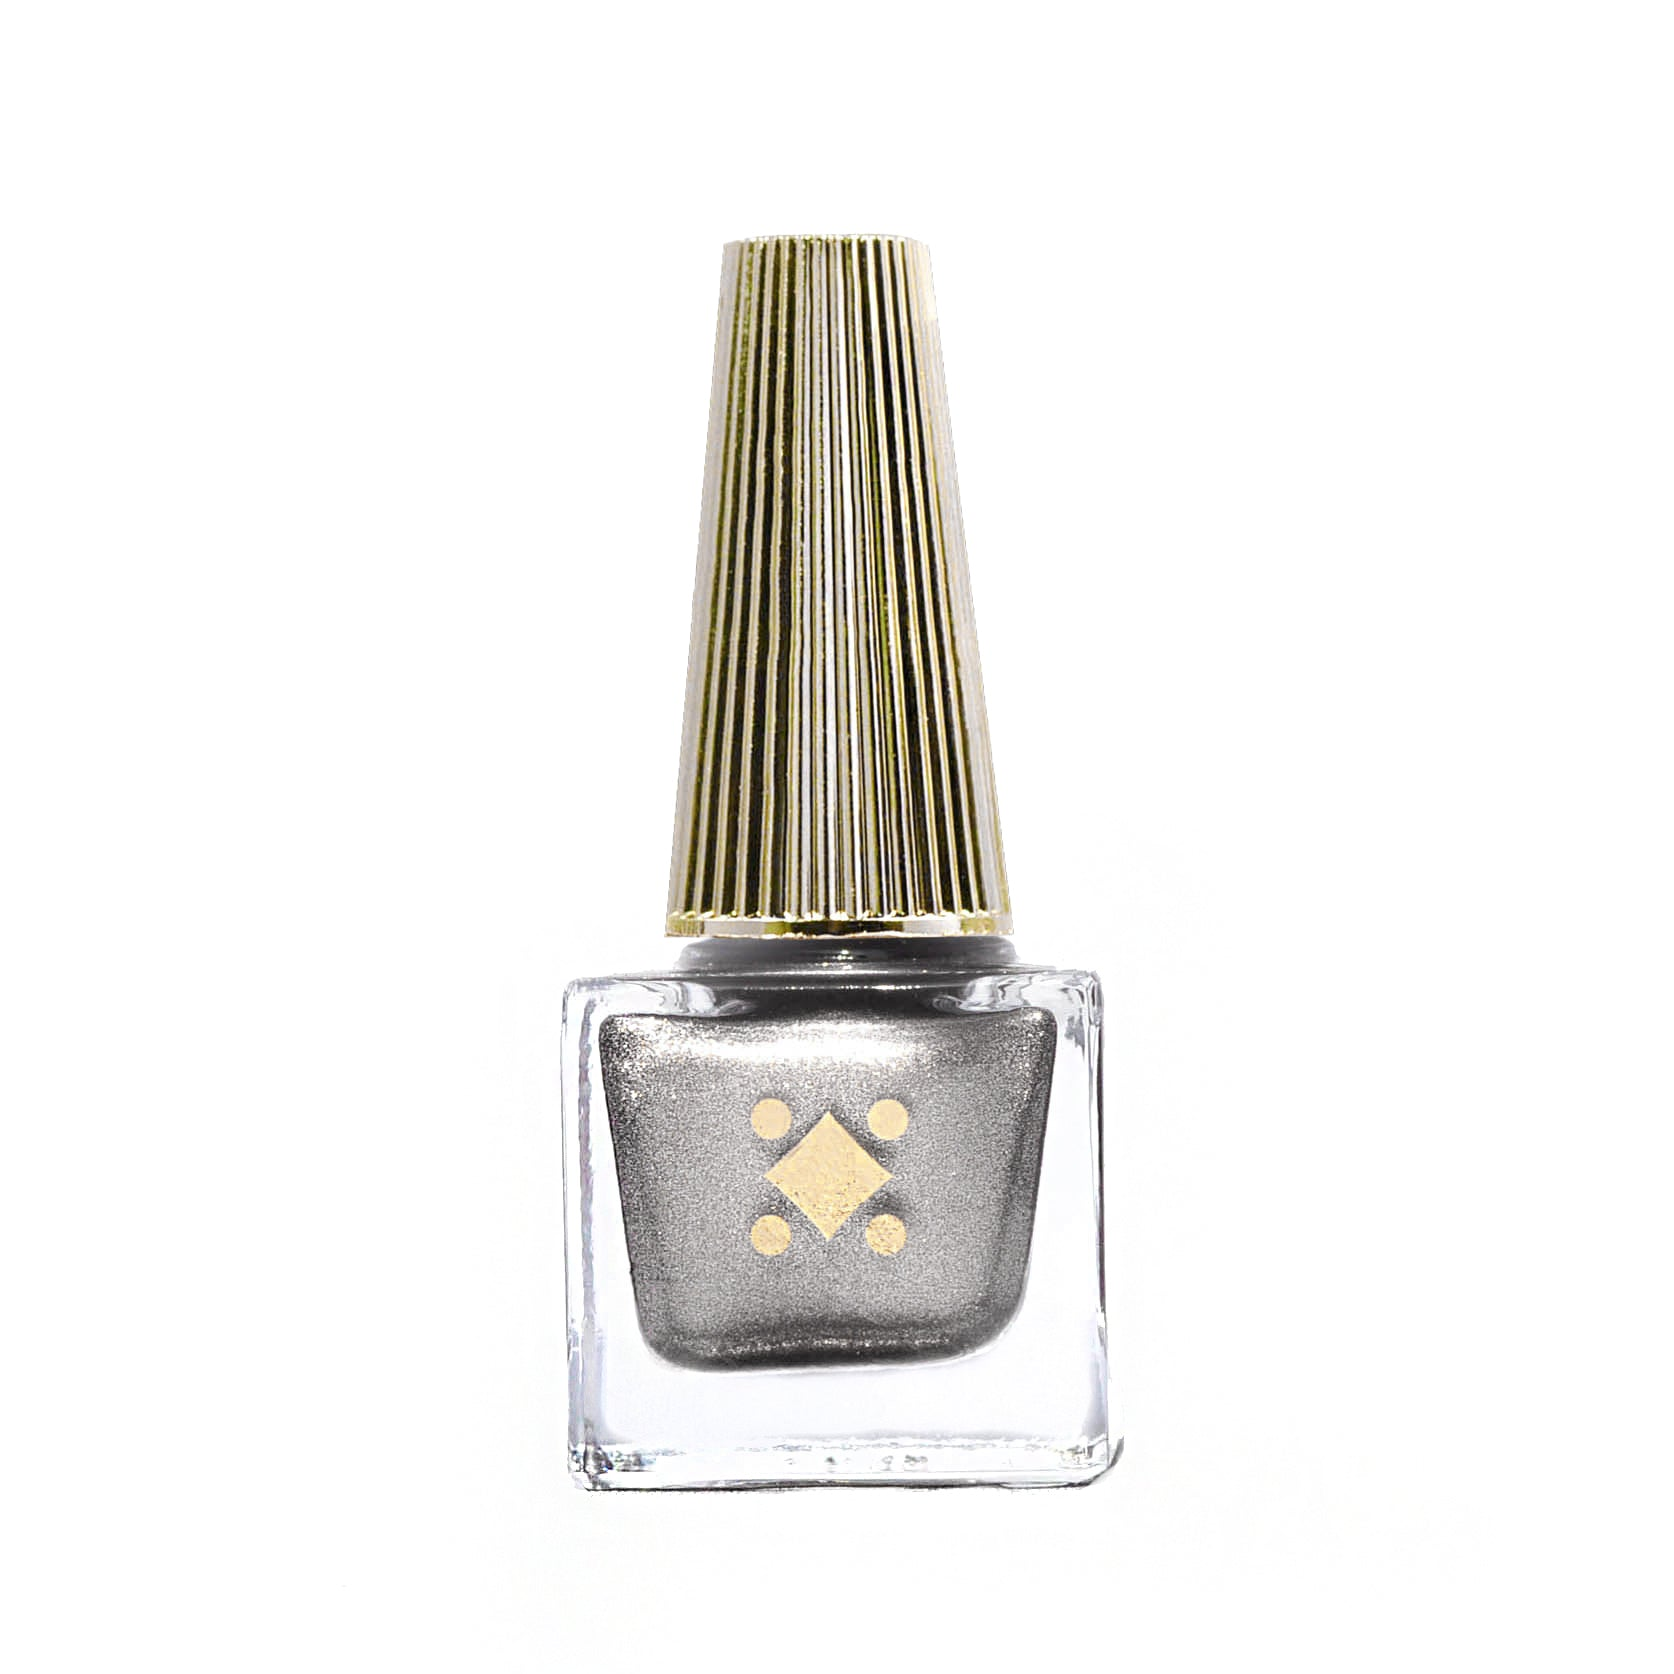 STARRY EYED - 6ML - silver metallic nail lacquer by Deco Miami